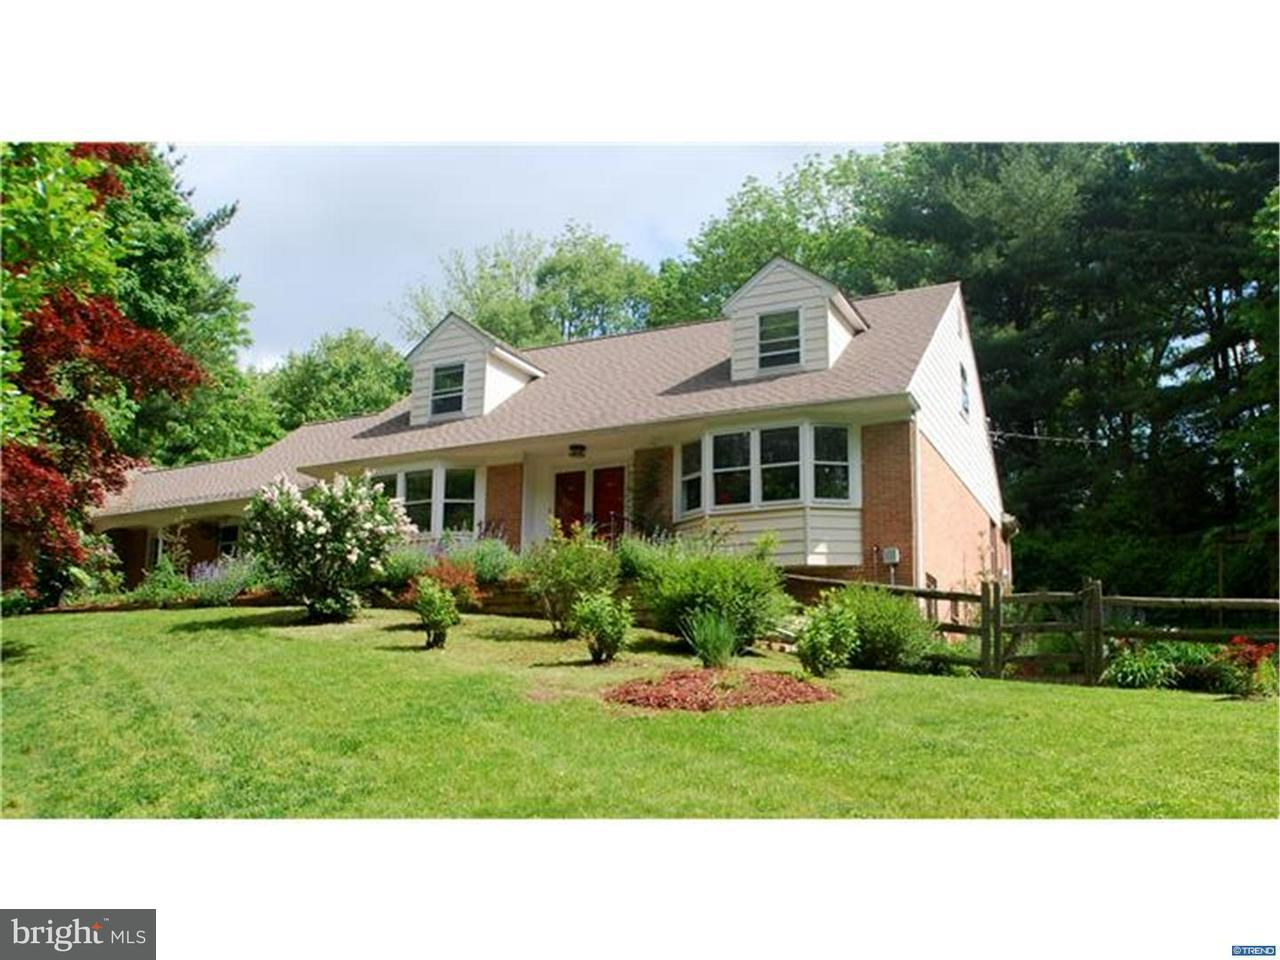 105 THISSELL LN, CHADDS FORD - Listed at $579,900, CHADDS FORD